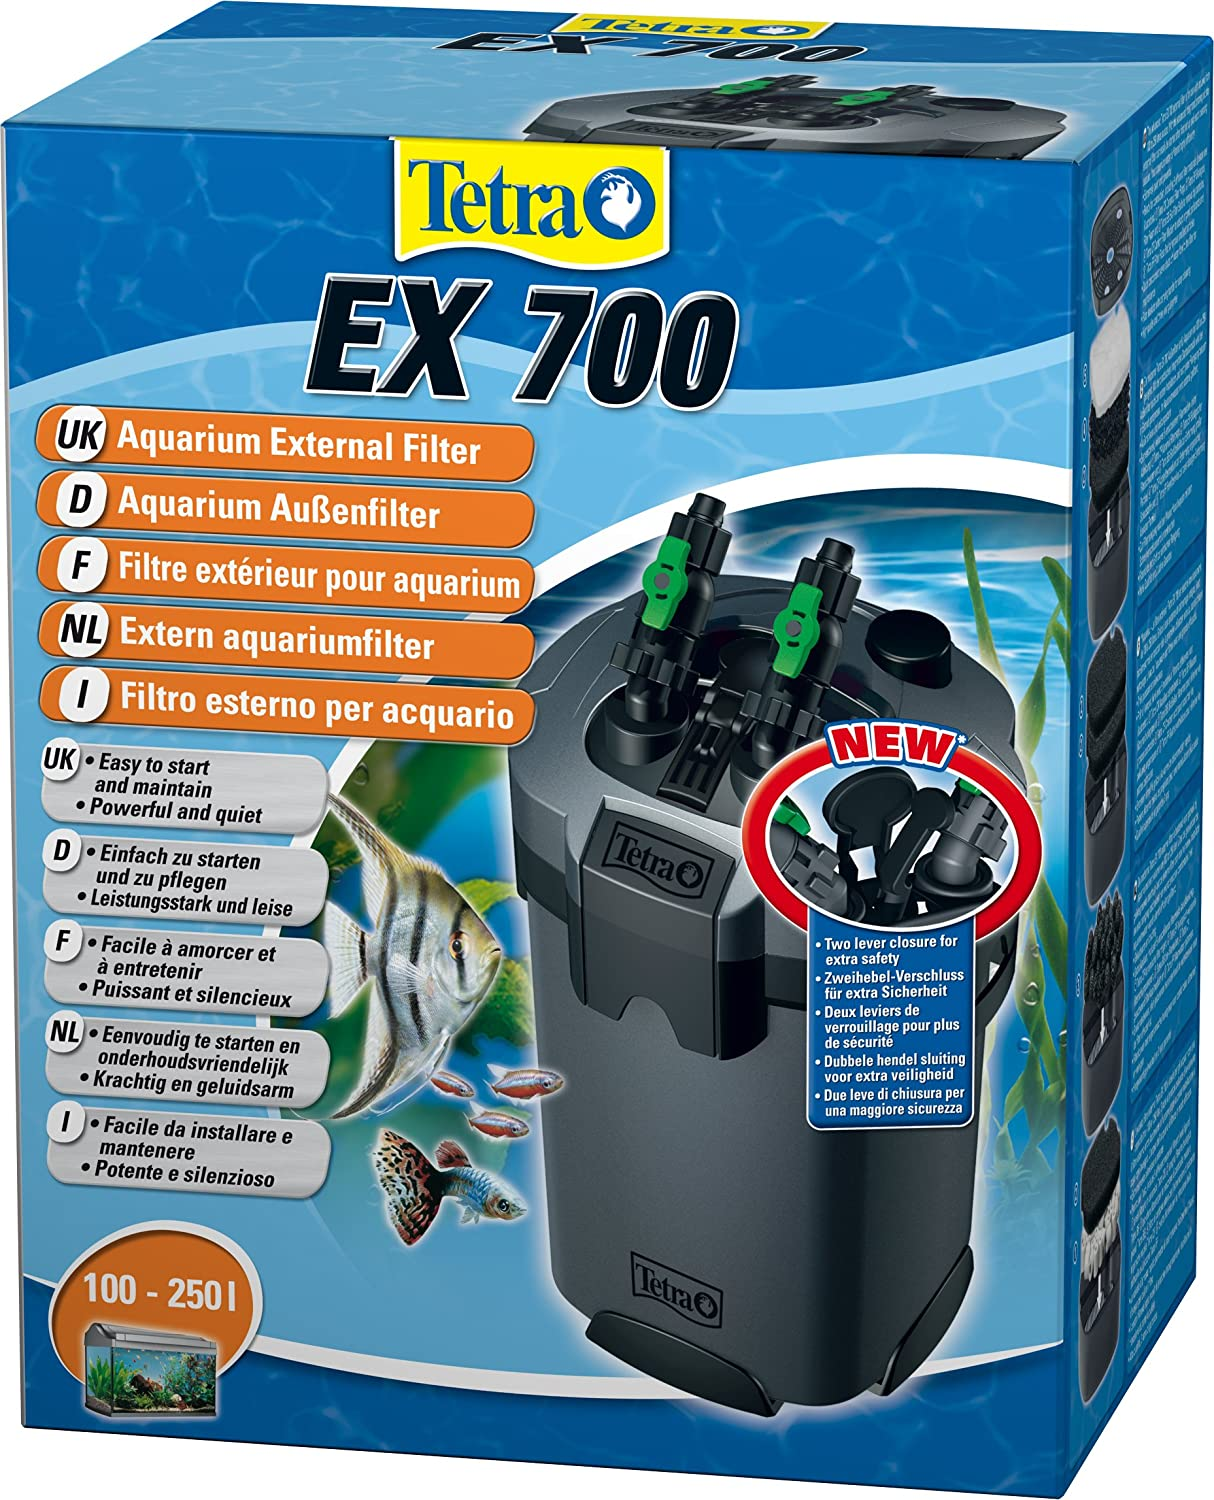 91ri1lf9JjL._SL1500_ tetra tec ex 700 external filter amazon co uk pet supplies  at cita.asia